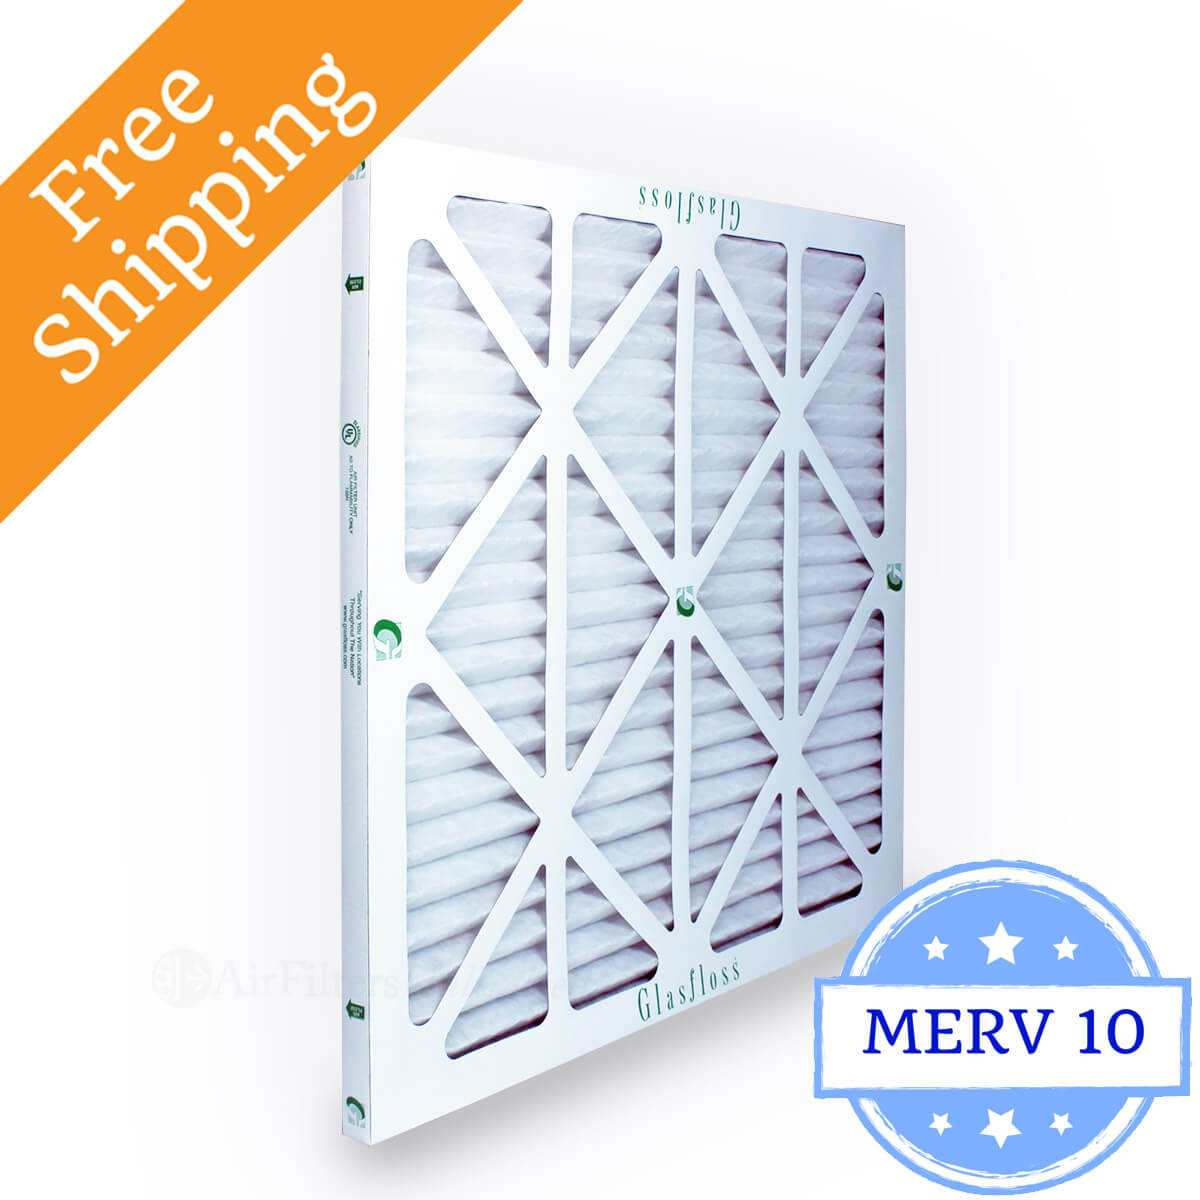 Glasfloss 24x24x1 Air Filter ZL Series